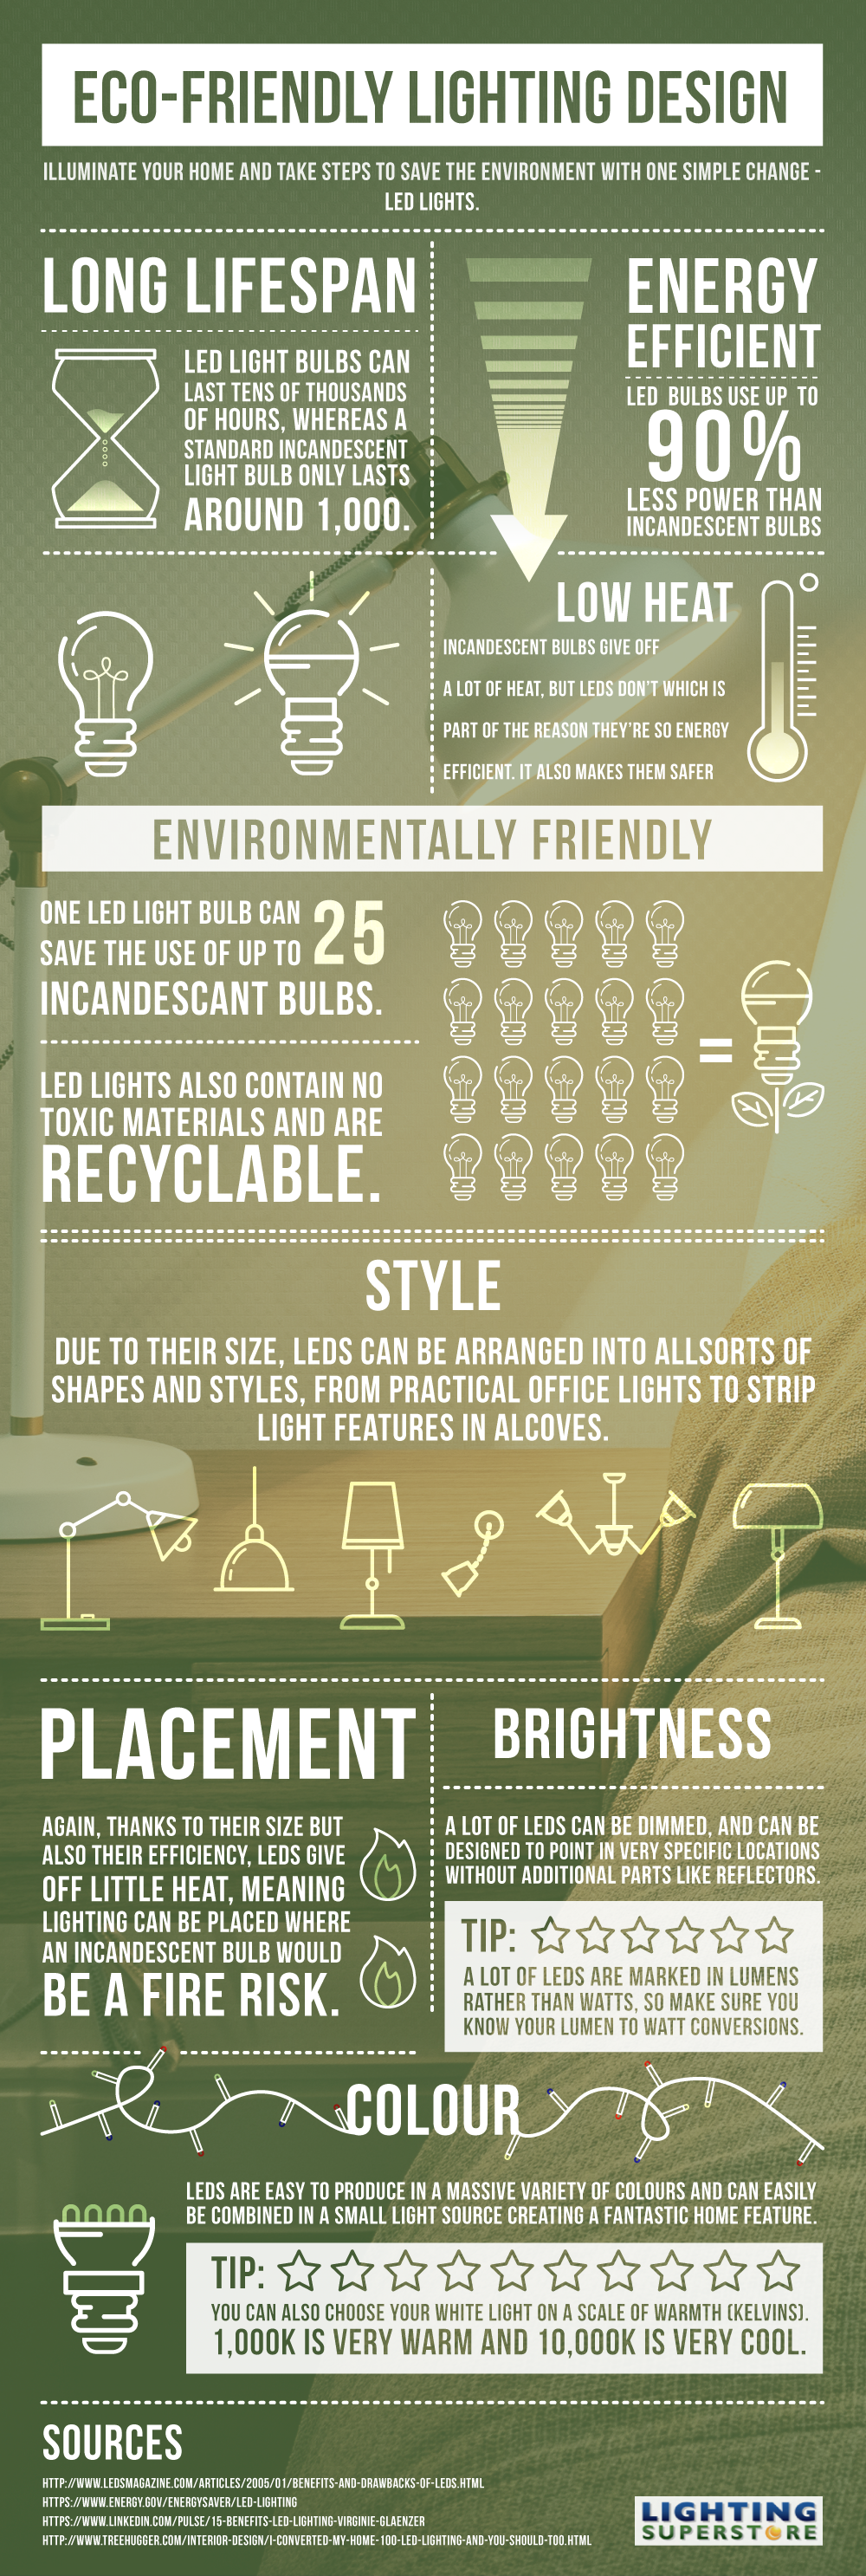 TLS eco-friendly lighting design